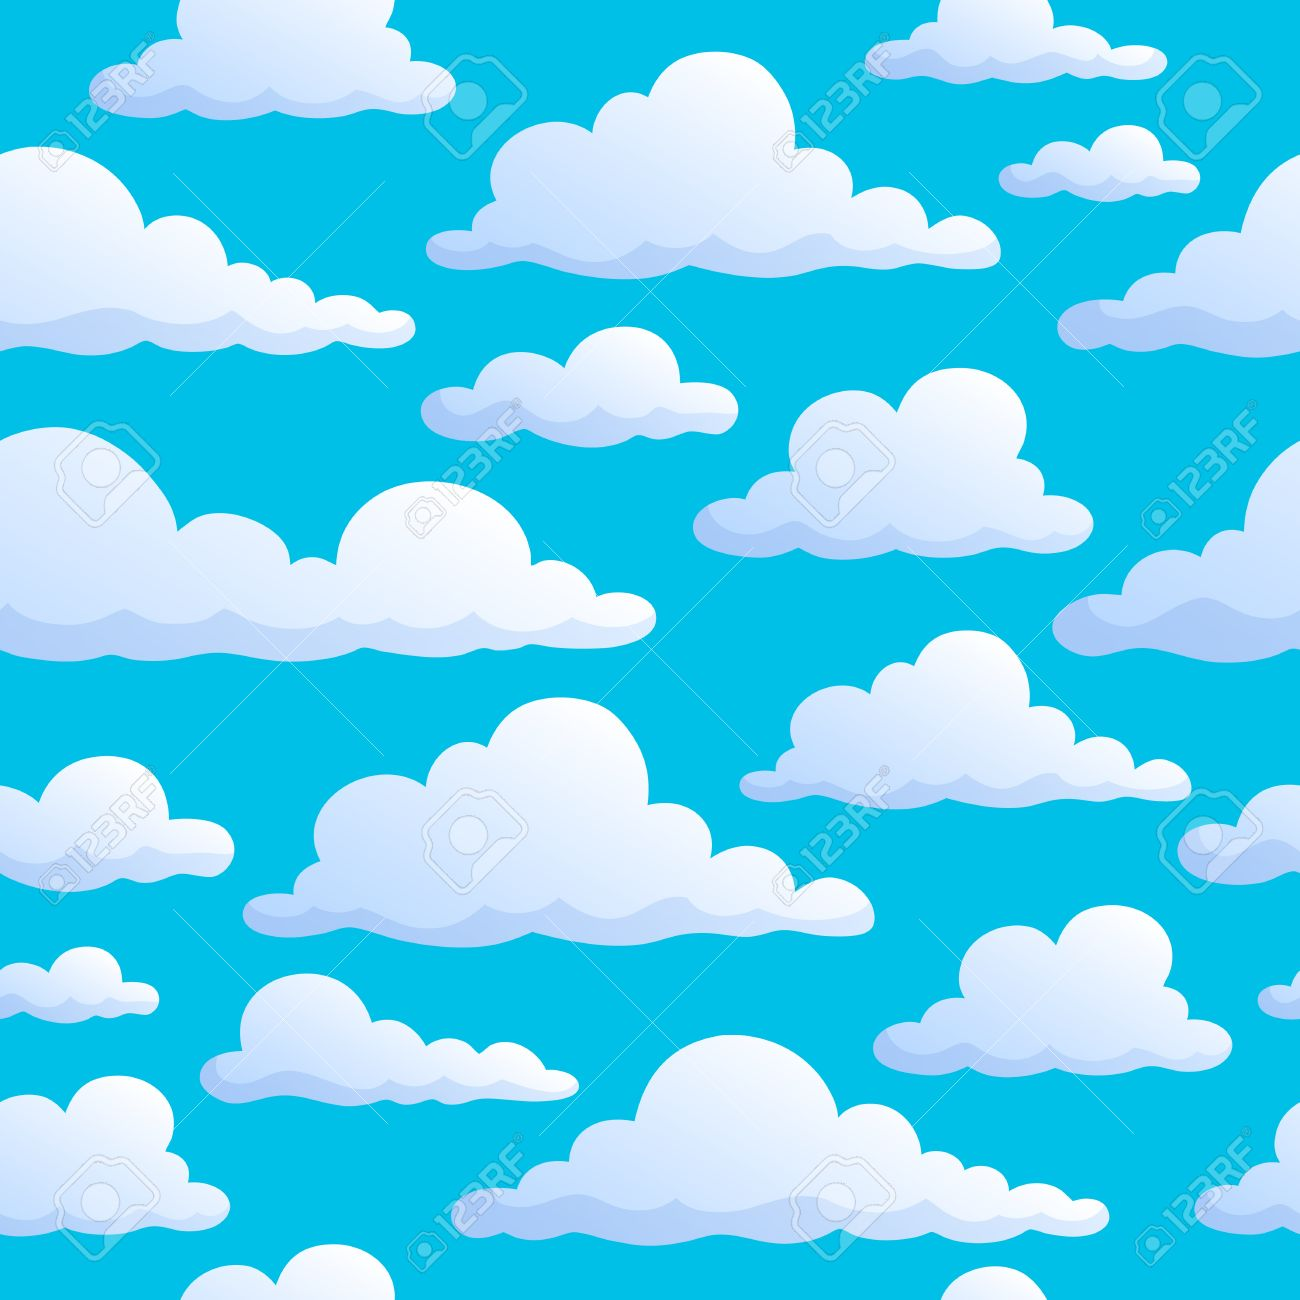 4197 Clouds free clipart.